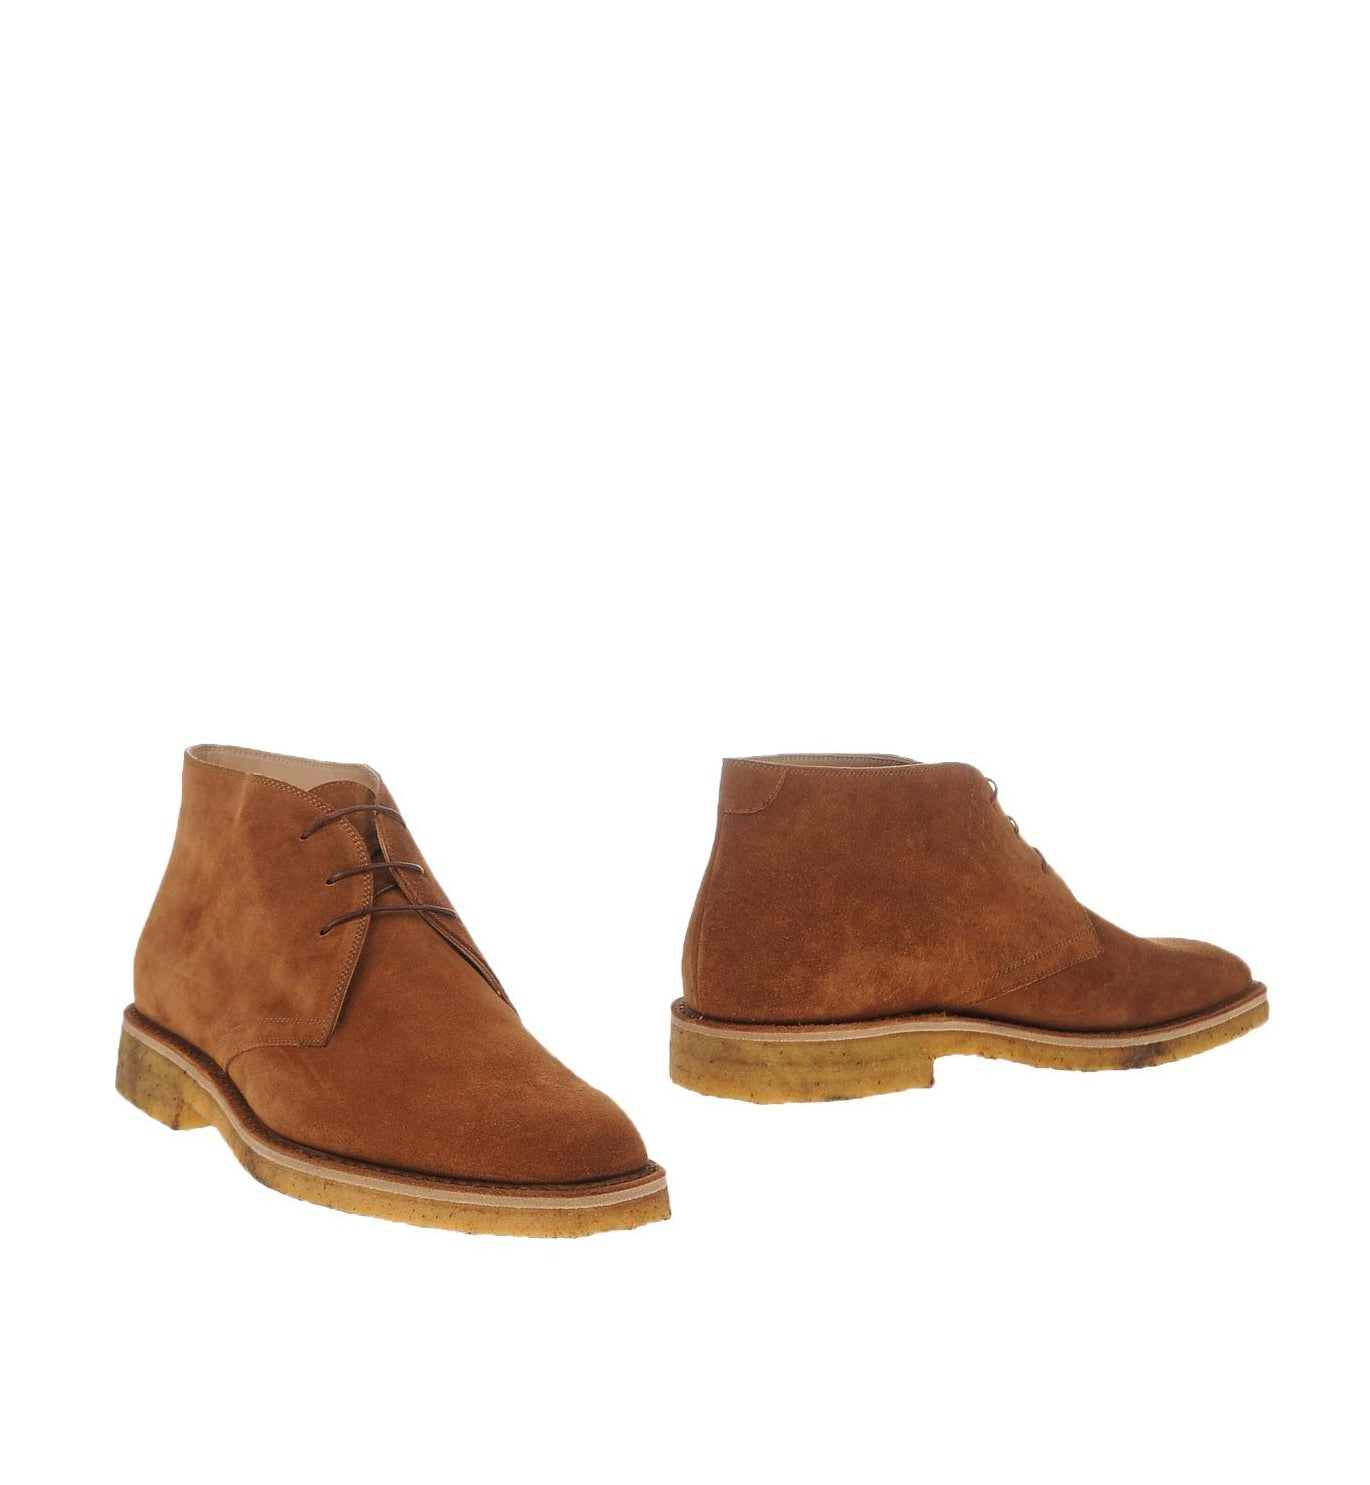 KITON - Brown Suede Slim Silhouette Ankle Boot Contrast Sole - 10